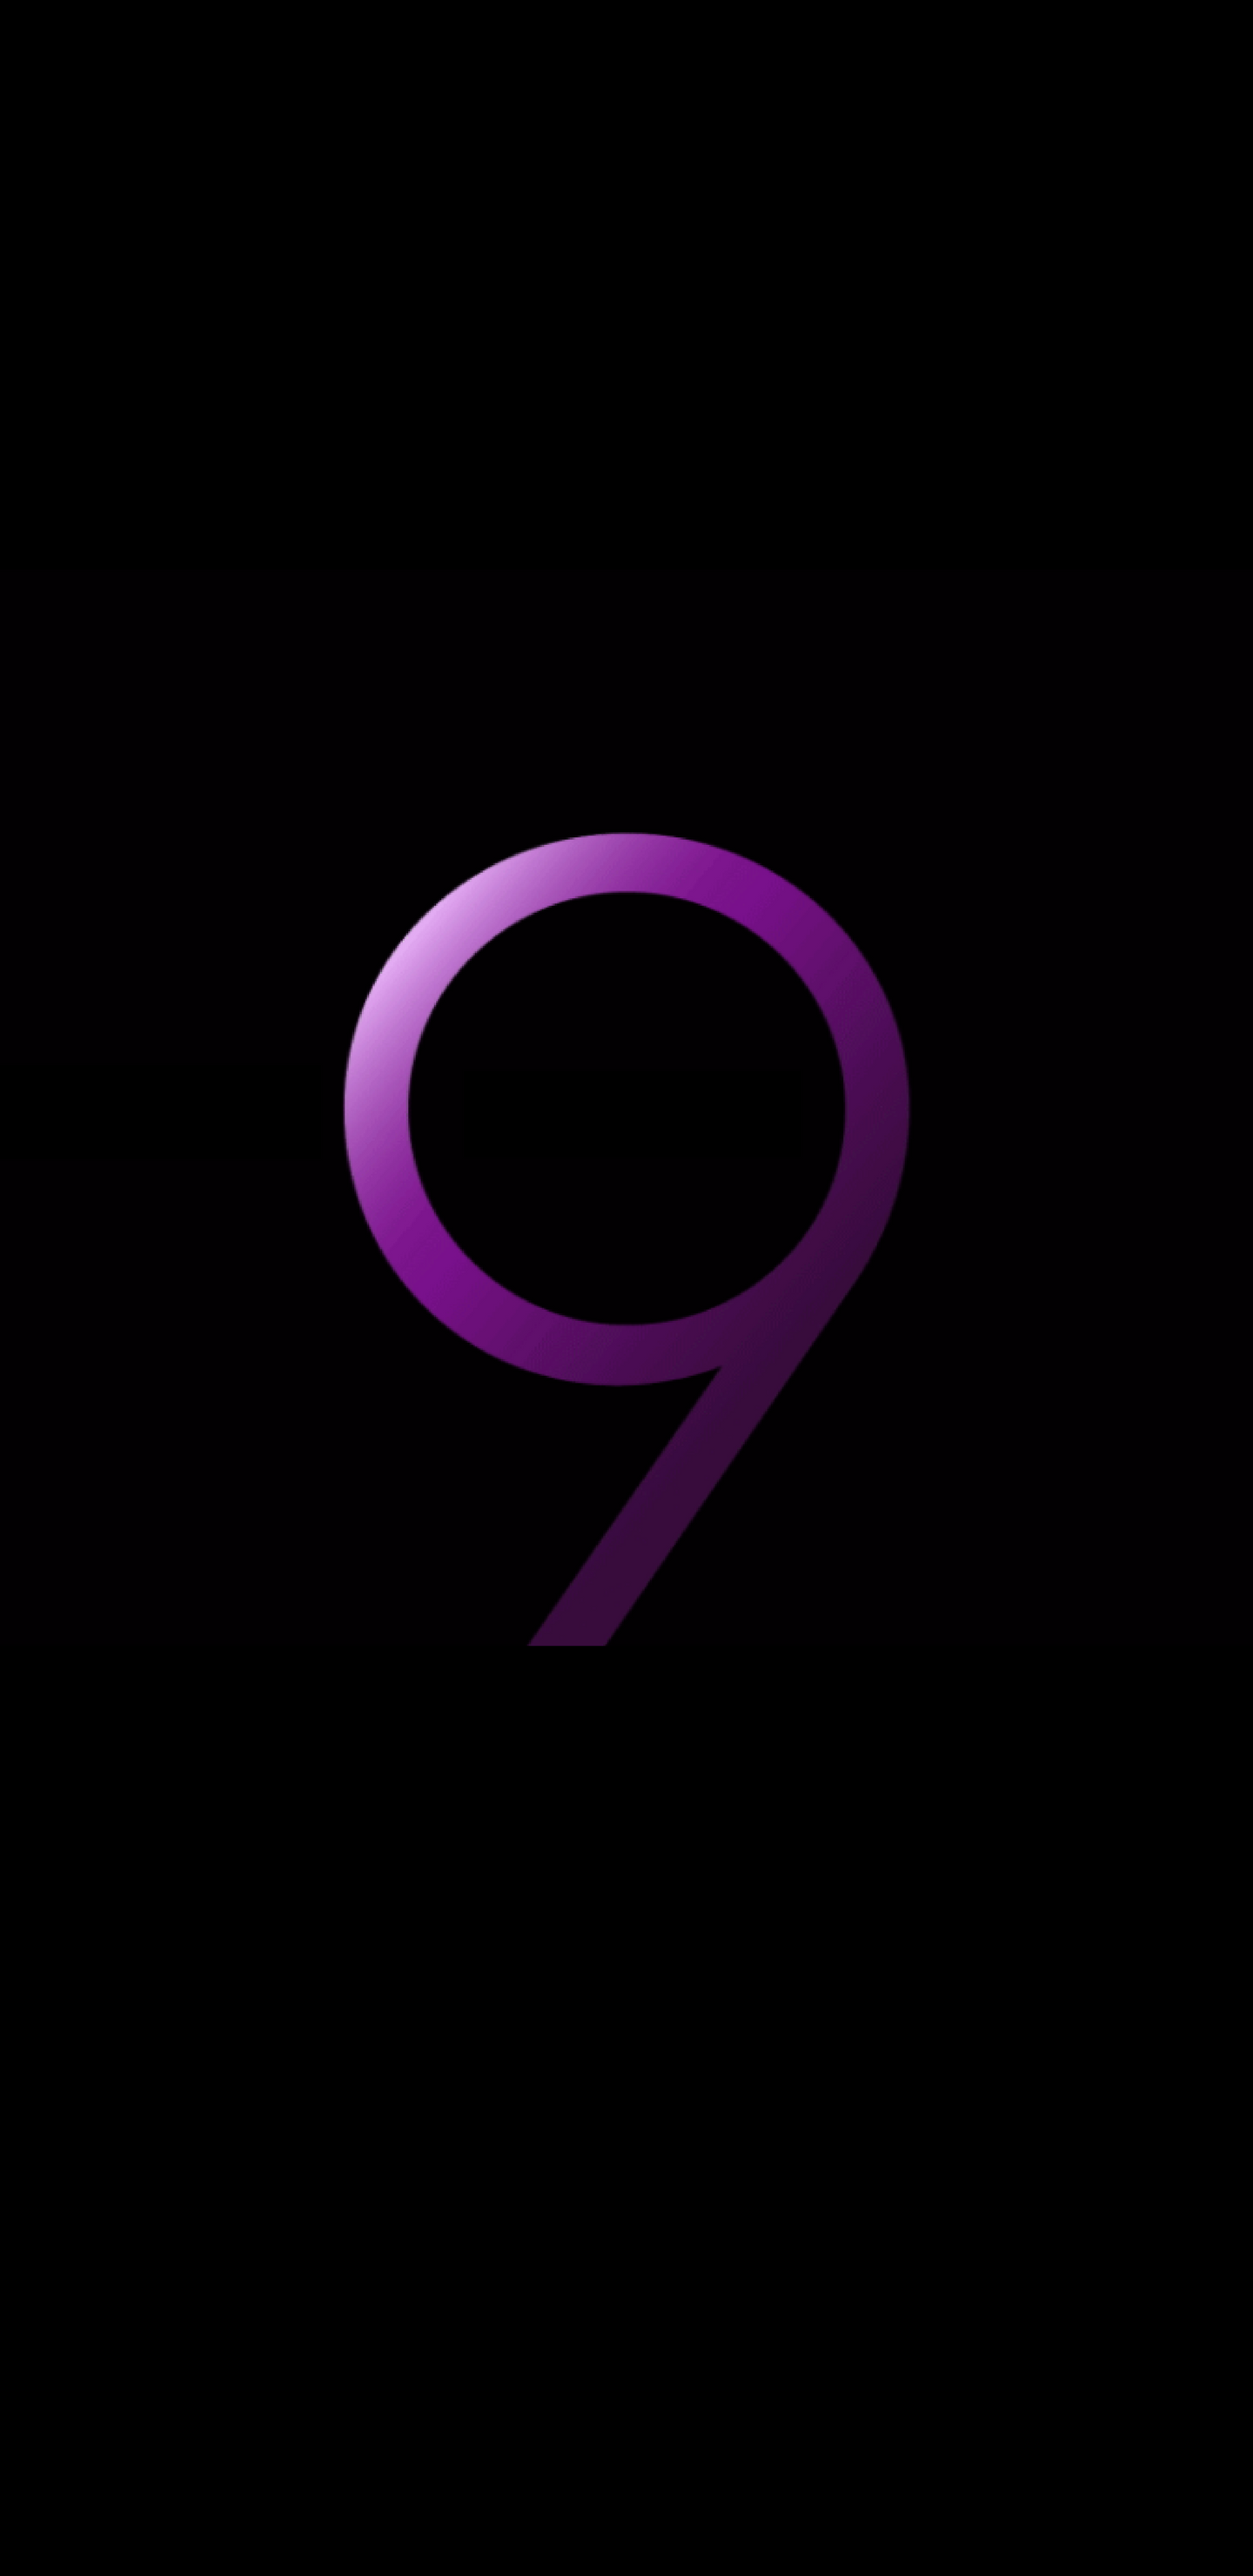 Download Samsung Galaxy S9 Official Stock Wallpapers Full Hd HD Wallpapers Download Free Map Images Wallpaper